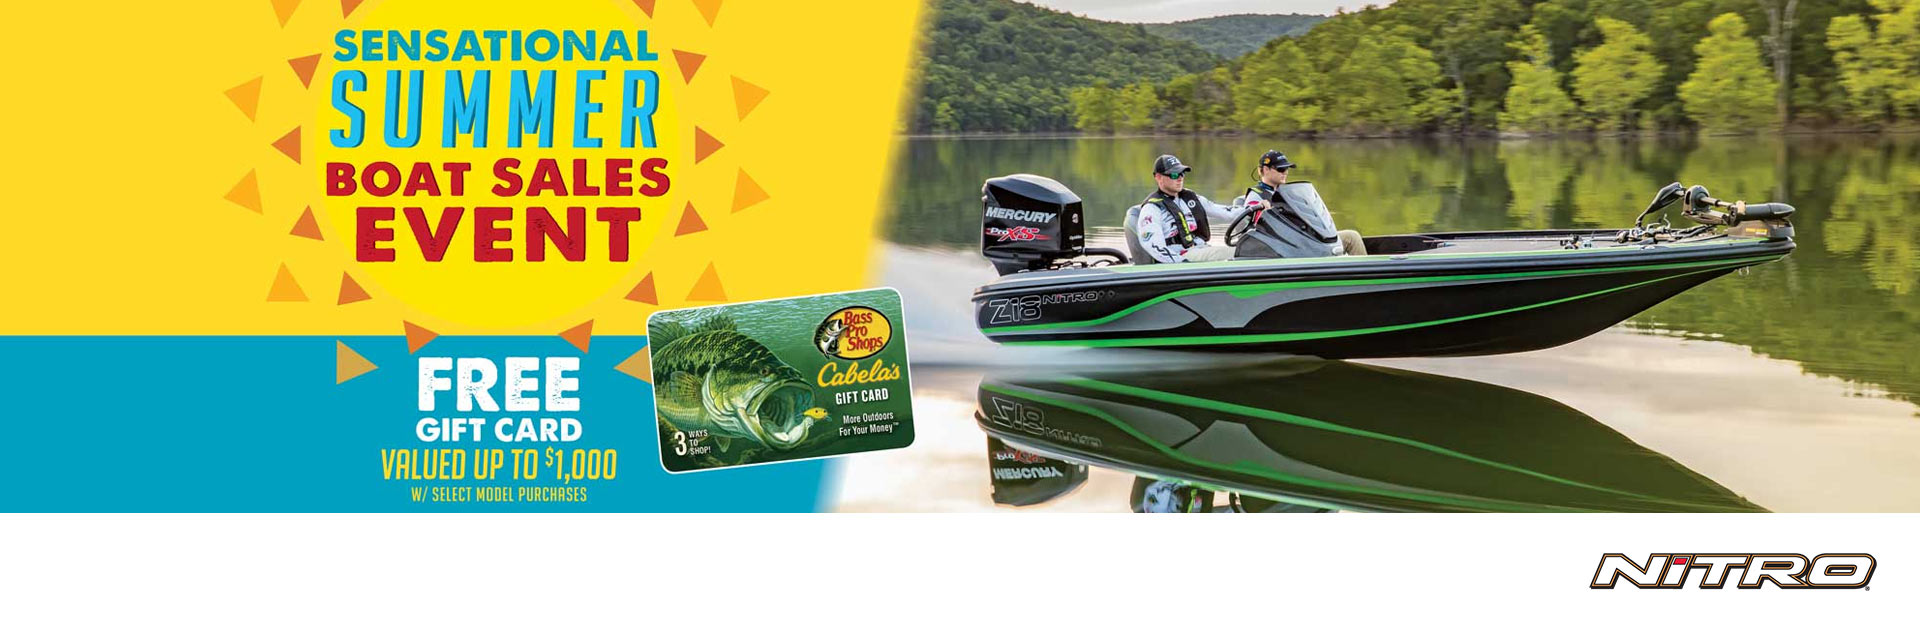 Nitro: The Sensational Summer Boat Sales Event